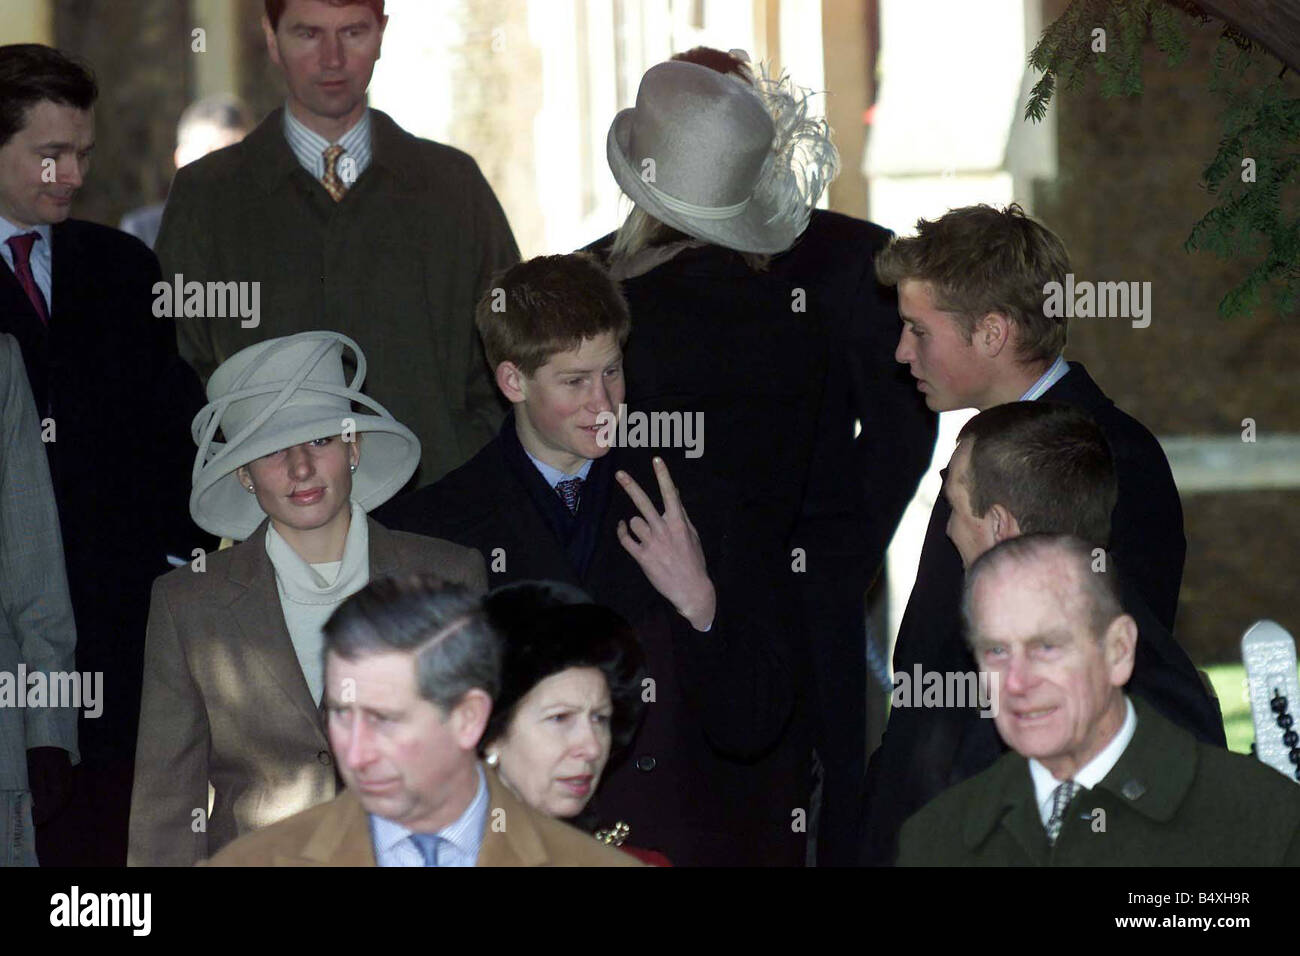 Royals at Sandringham Churchil Service December 2000 Prince Harry Zara and Prince William - Stock Image